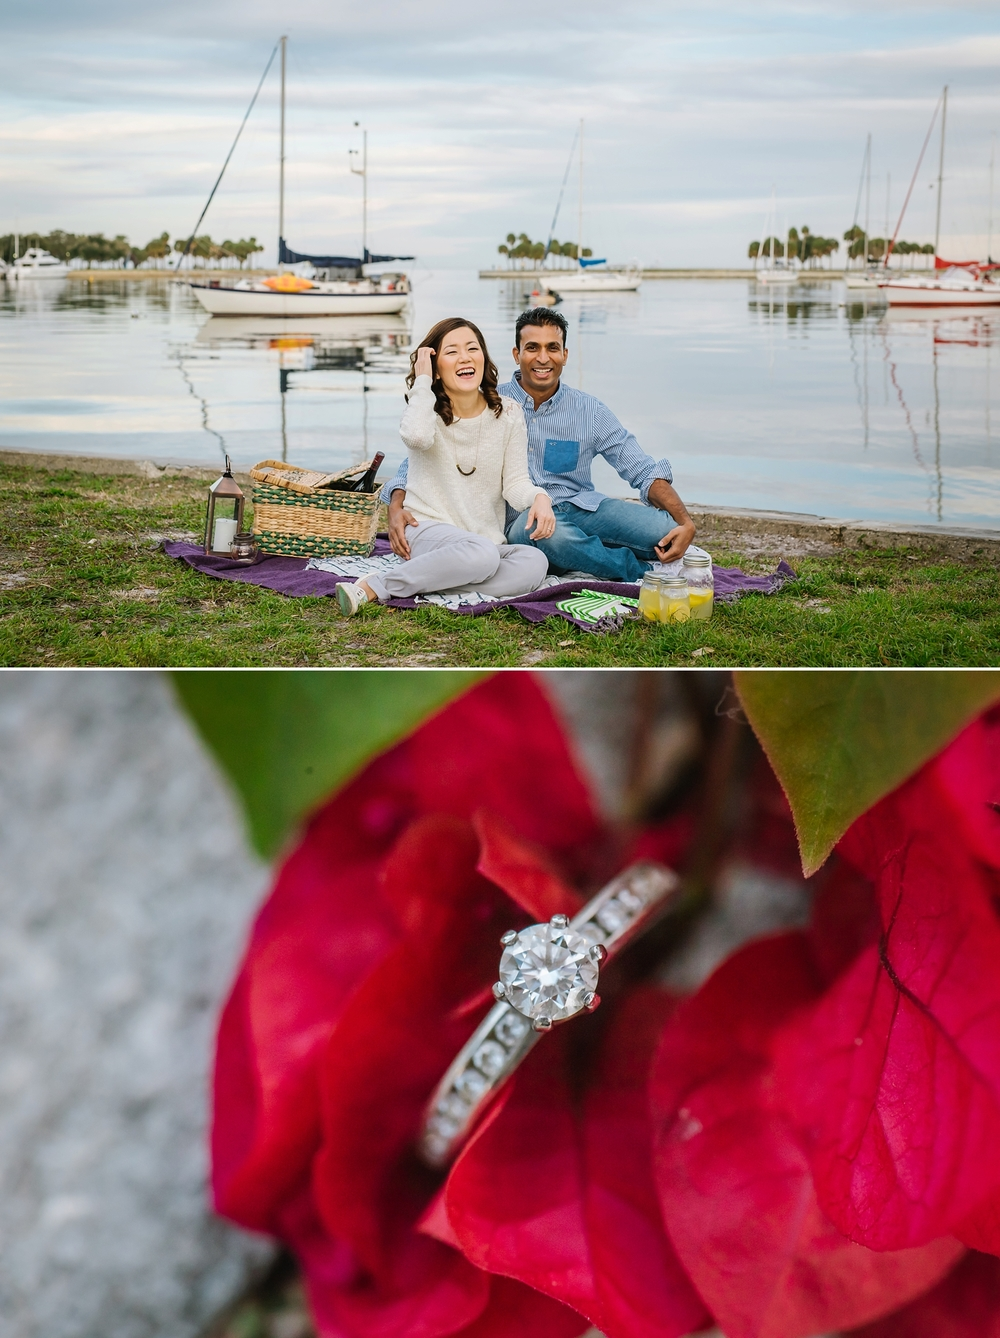 st-pete-marina-engagement-photography_0005.jpg